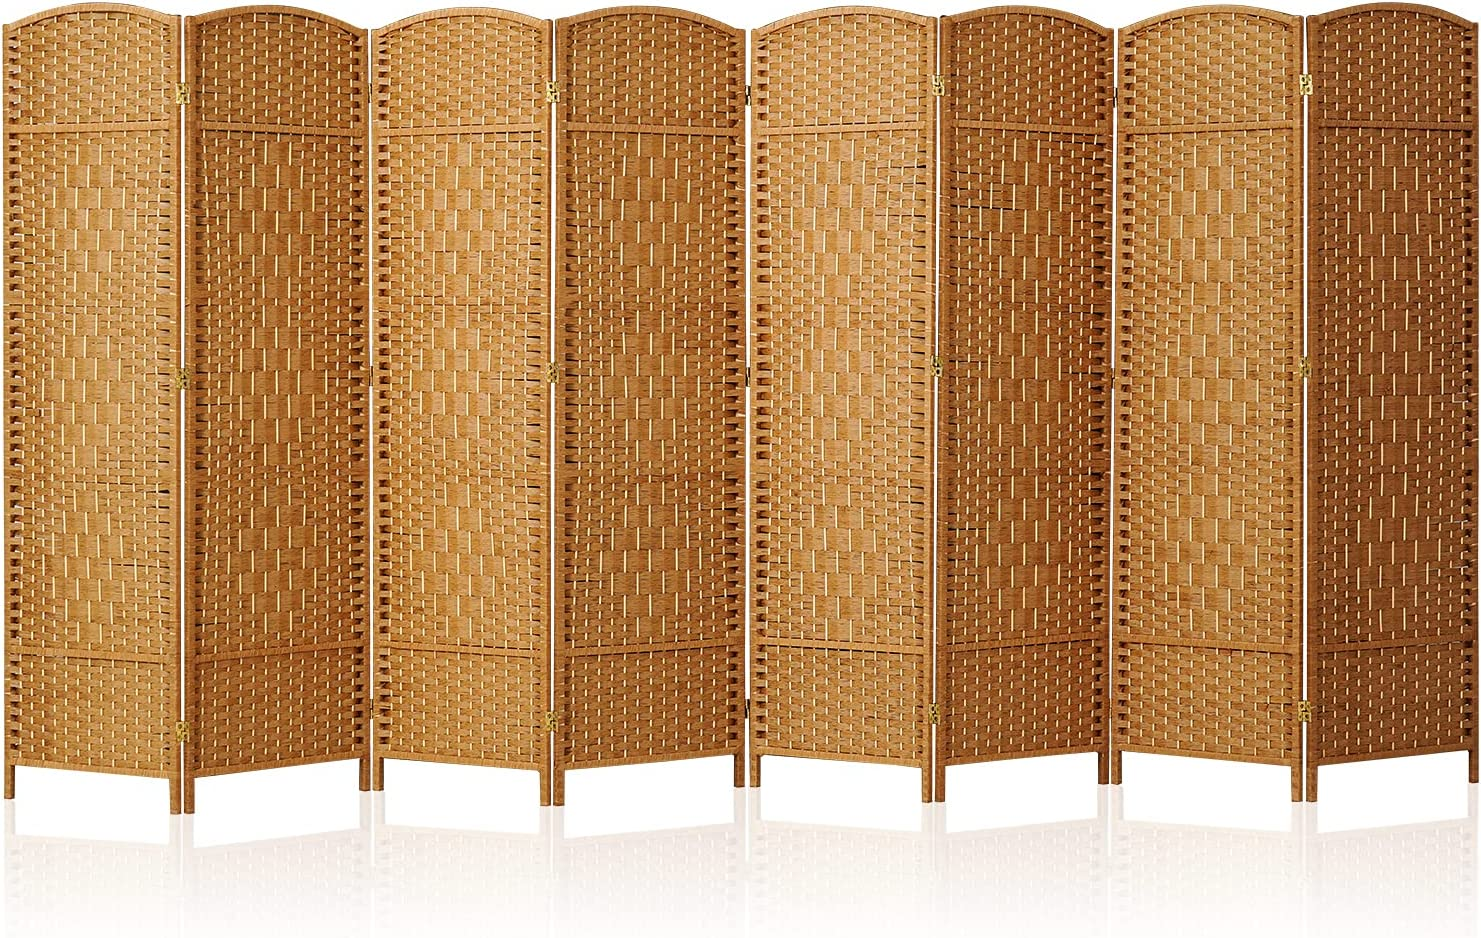 JOSTYLE Super Special SALE held Room Divider 6ft. Popular product Tall Wide Extra Screen Foldin Privacy